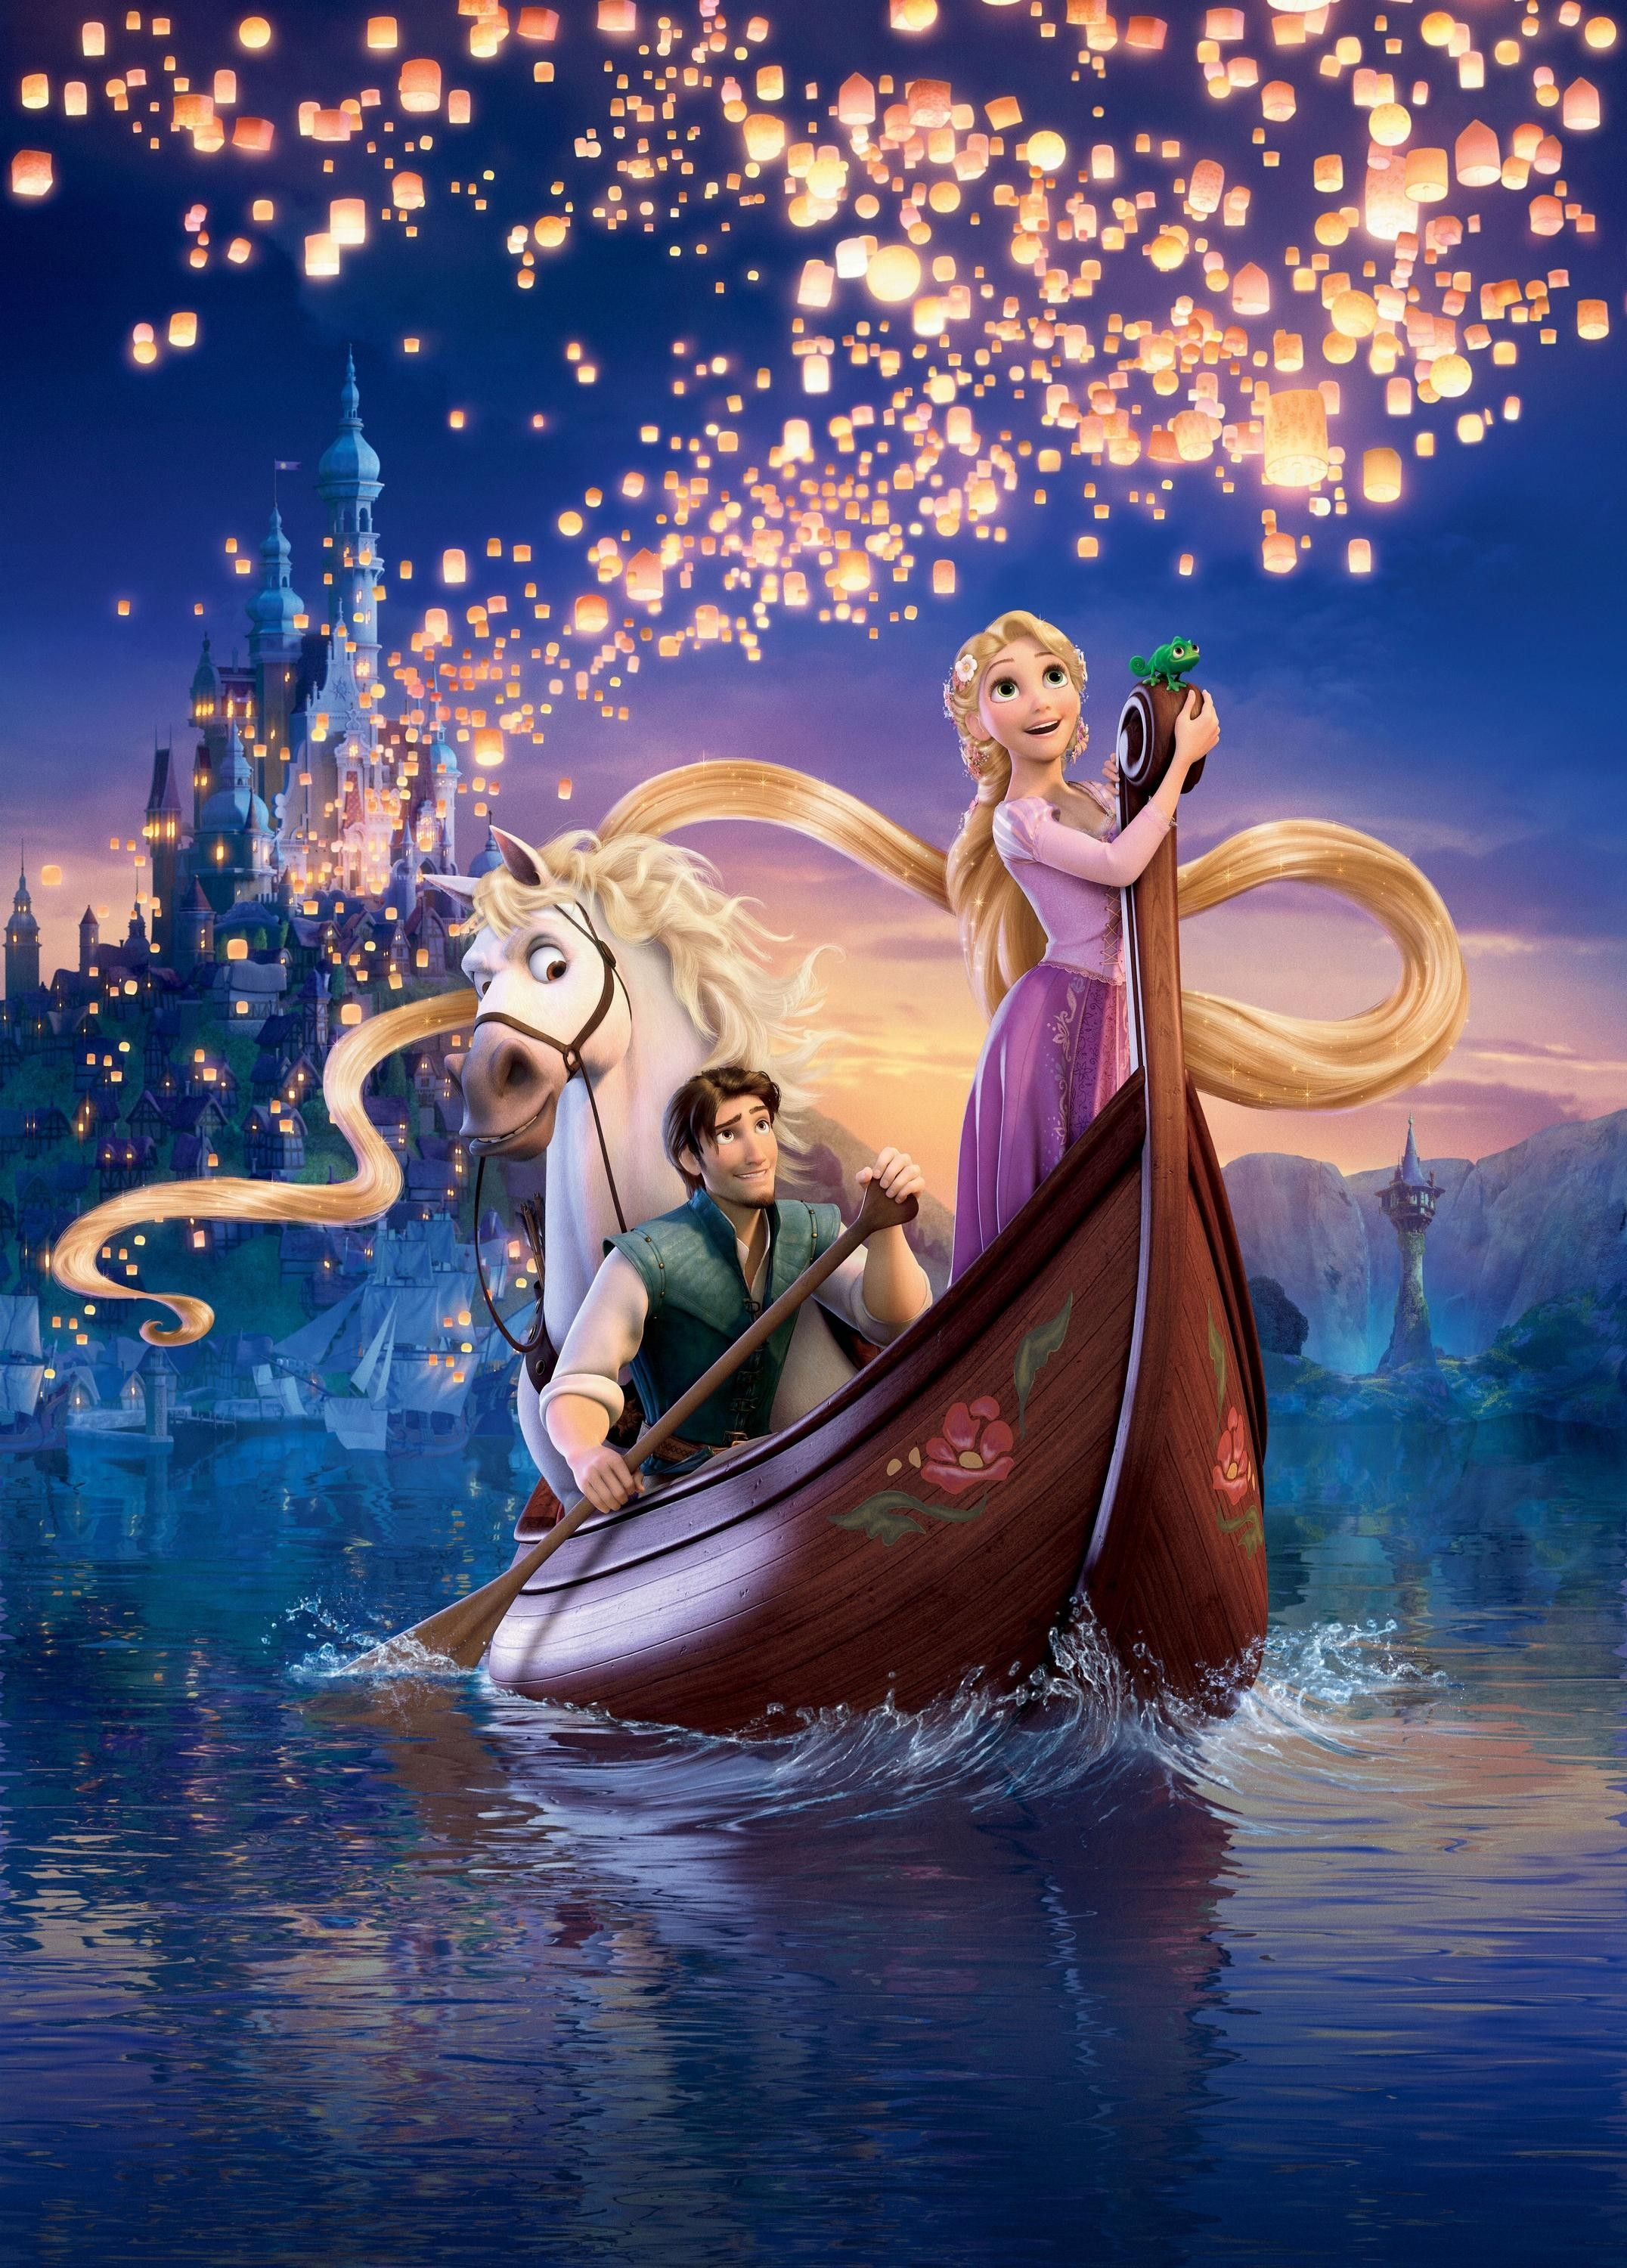 Disney Company Tangled Artwork Wallpaper 2059667 Wallbase Cc Disney Princess Movies